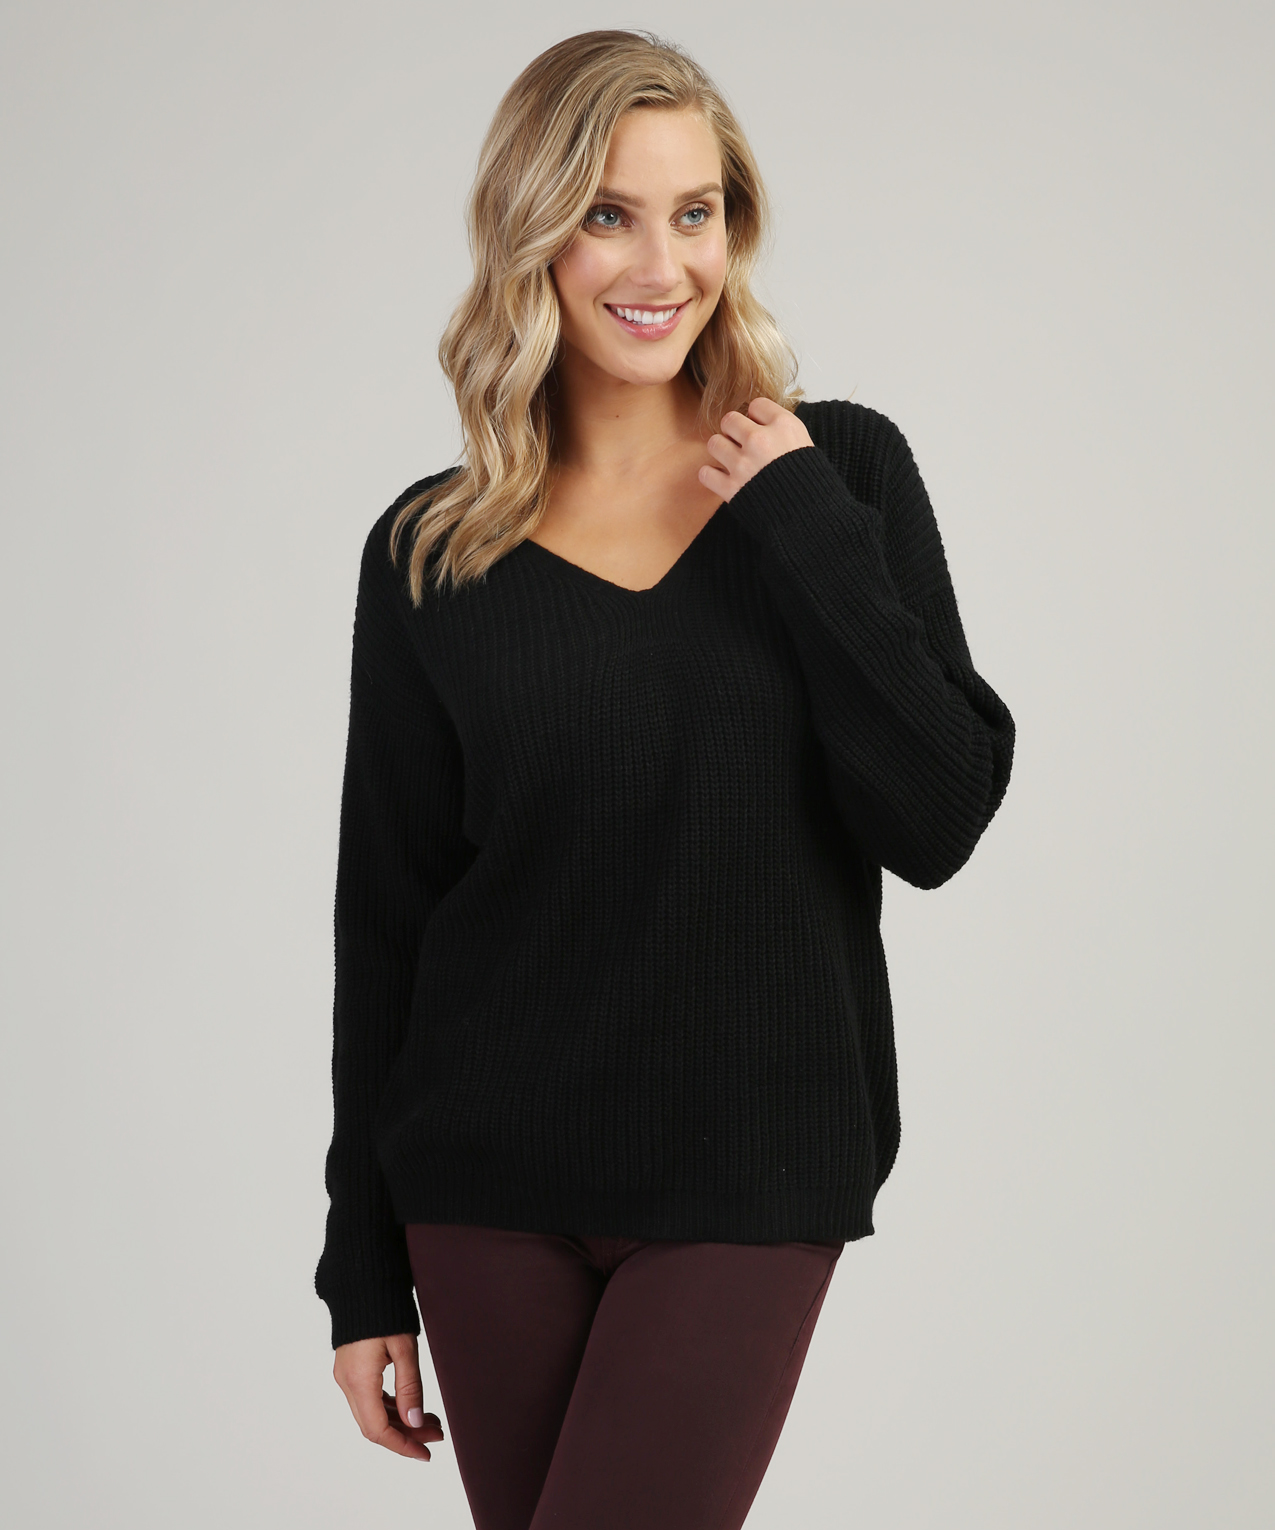 c1607bca2a lace up back sweater - wb